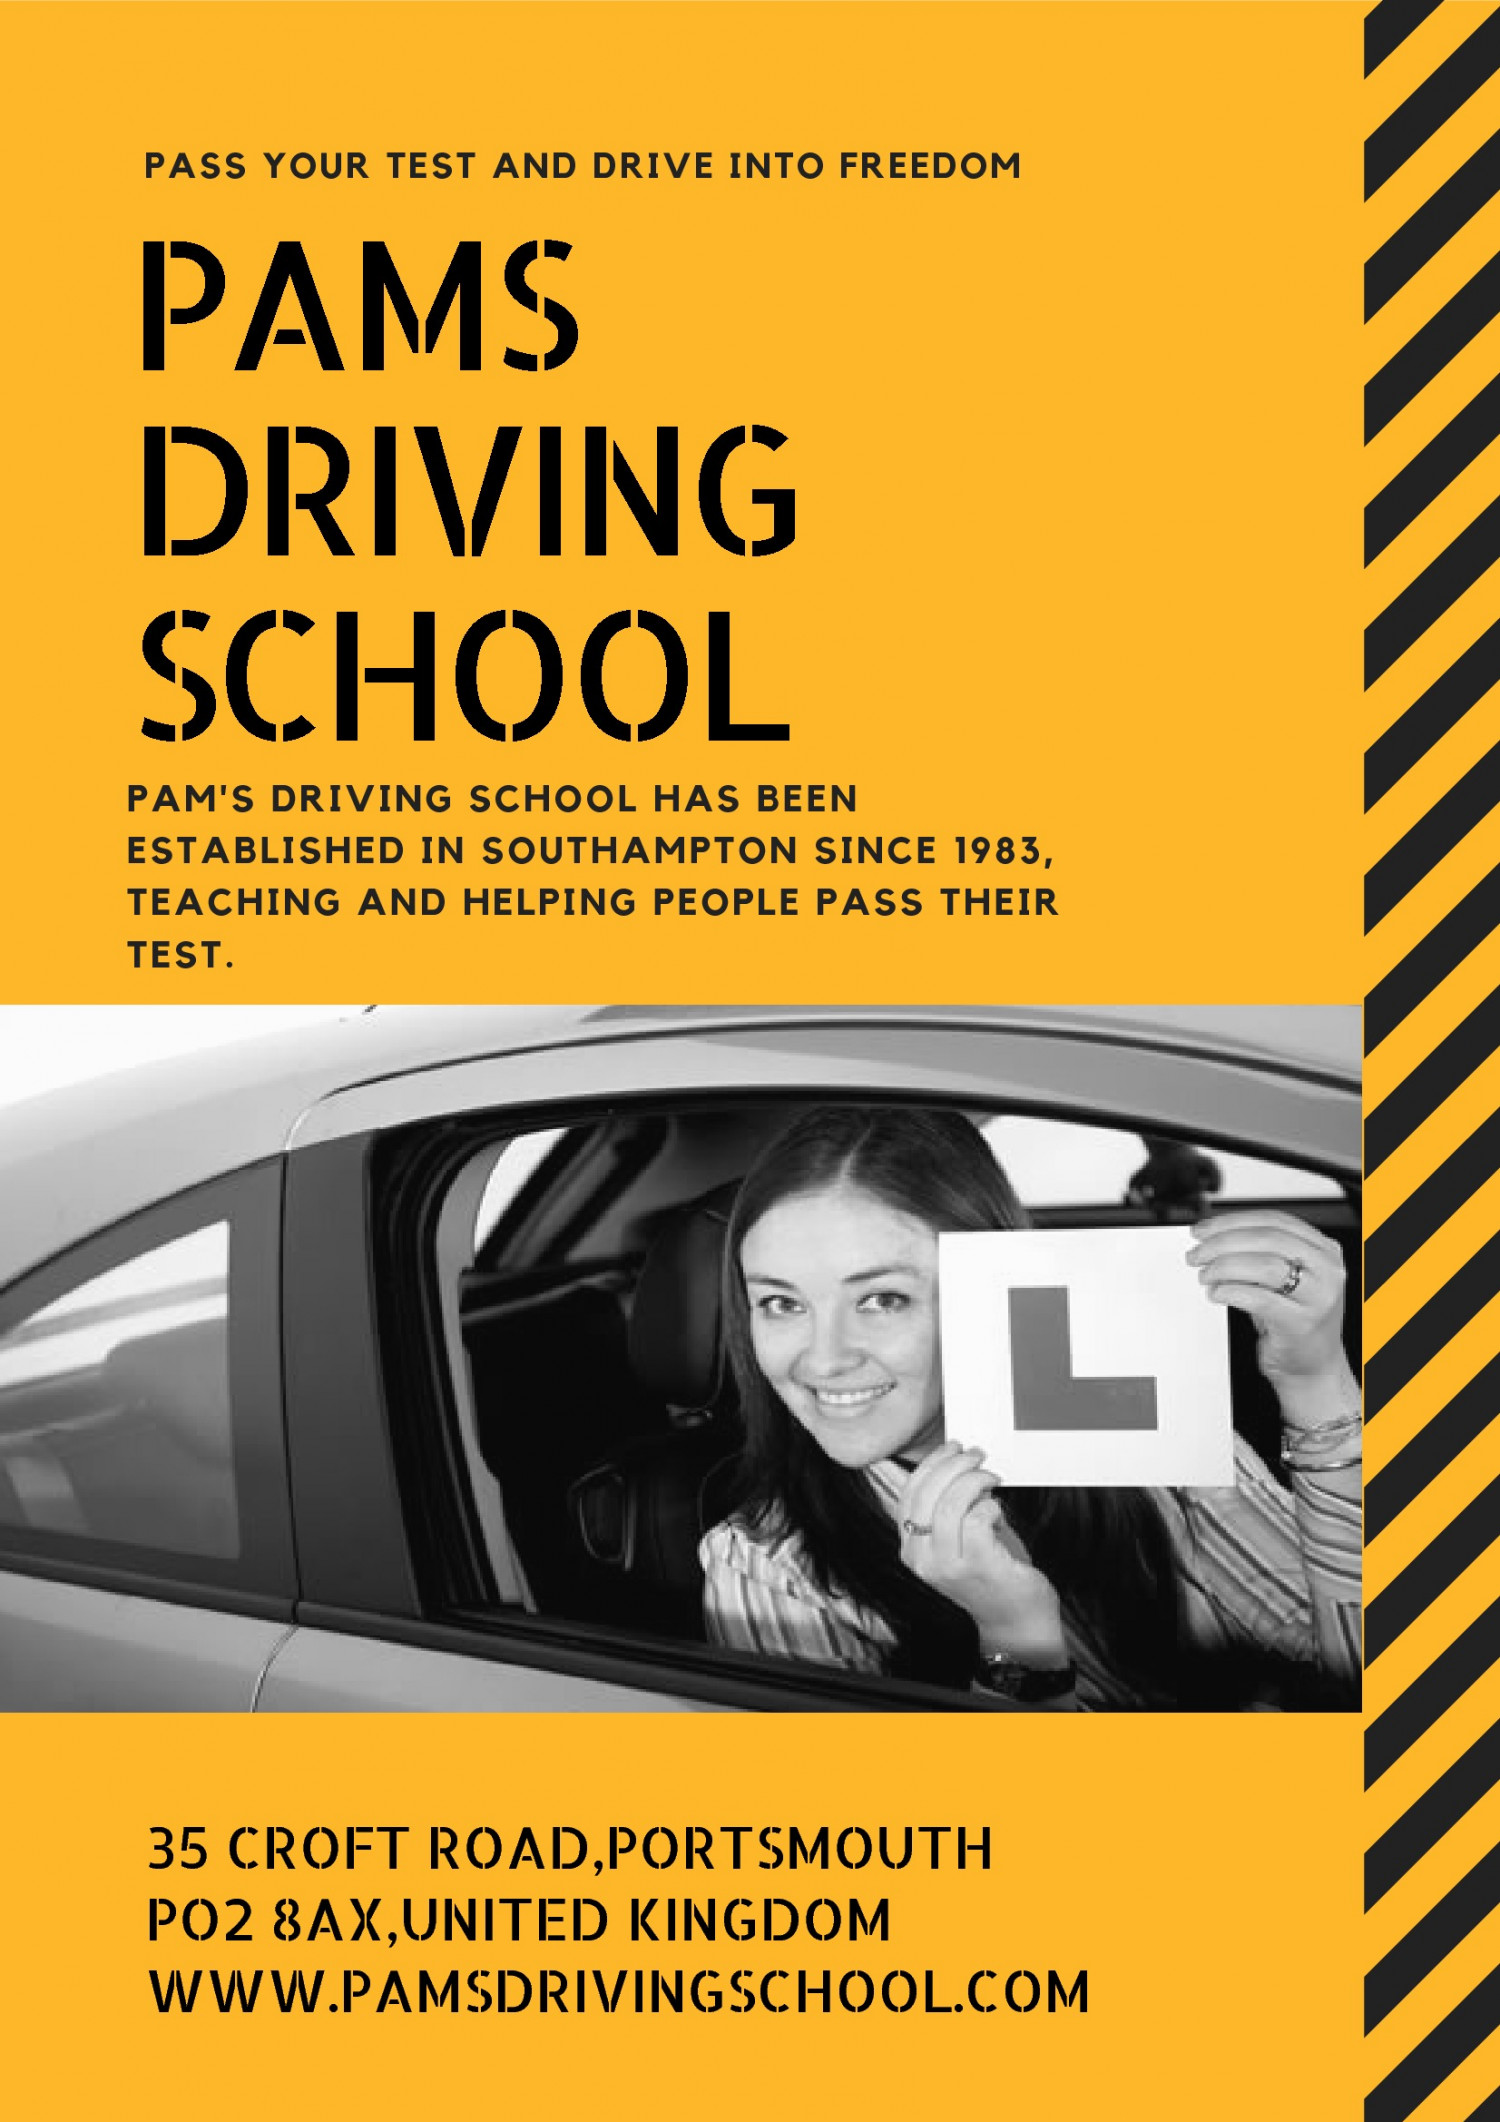 PAM'S DRIVING SCHOOL Infographic